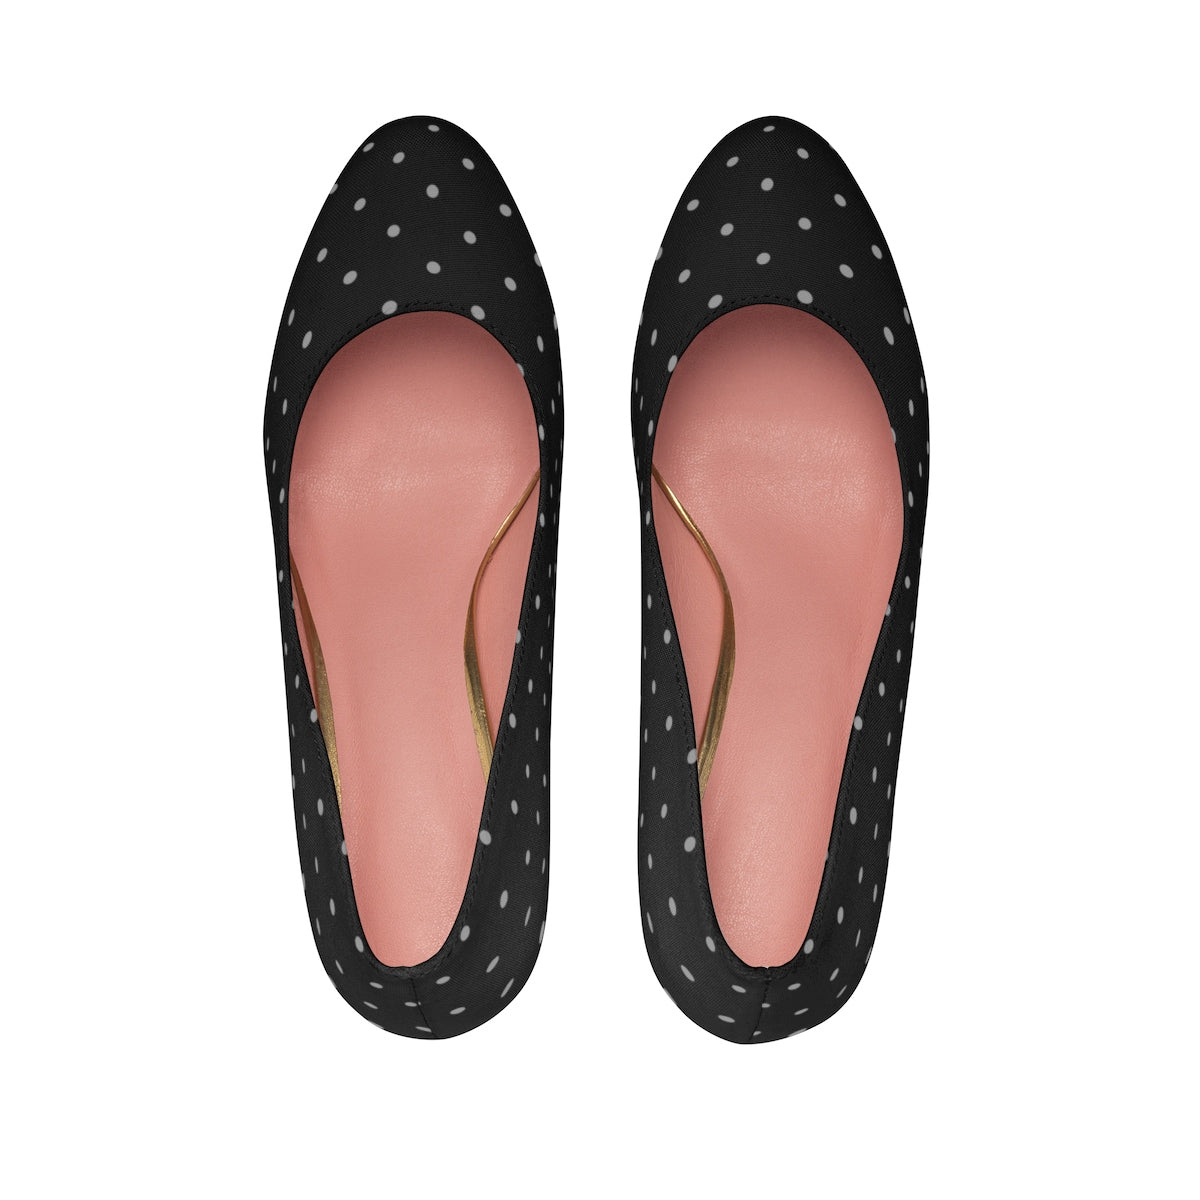 Black Polka Dot High Heels Shoes - Polka Dotted All The Things Boutique